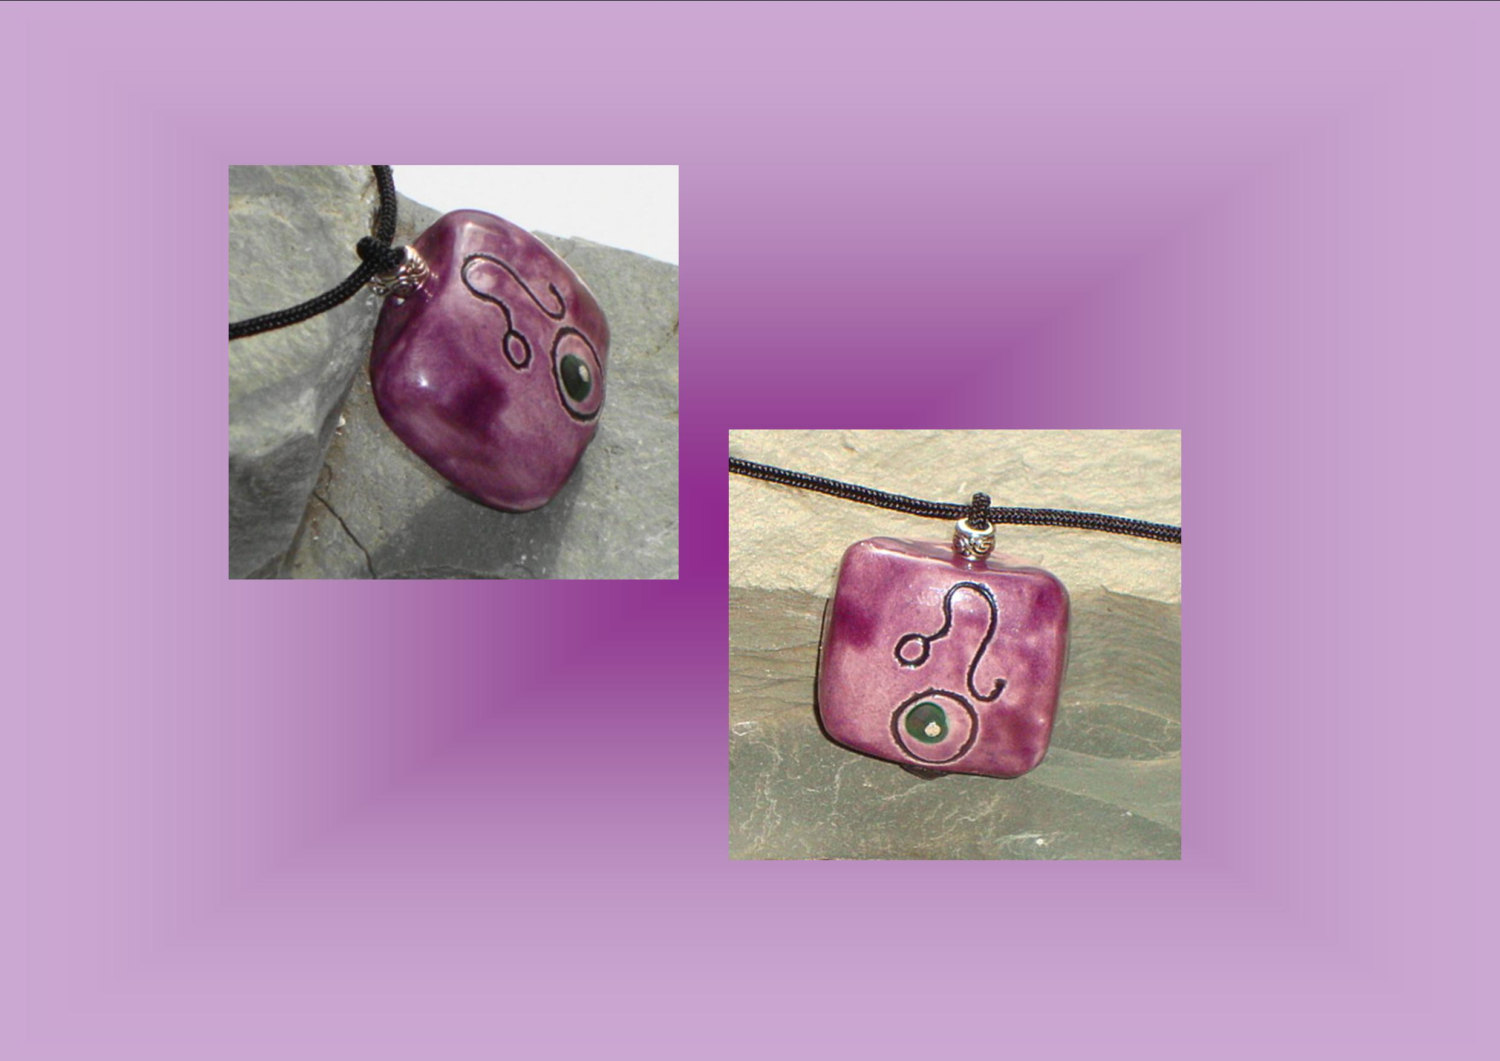 Leo Zodiac Pendant Necklace Sun Leo Pendant Purple Ceramic Focal Bead Zodiac Pendant Necklace Astrology Pendant Zodiac Leo Necklace